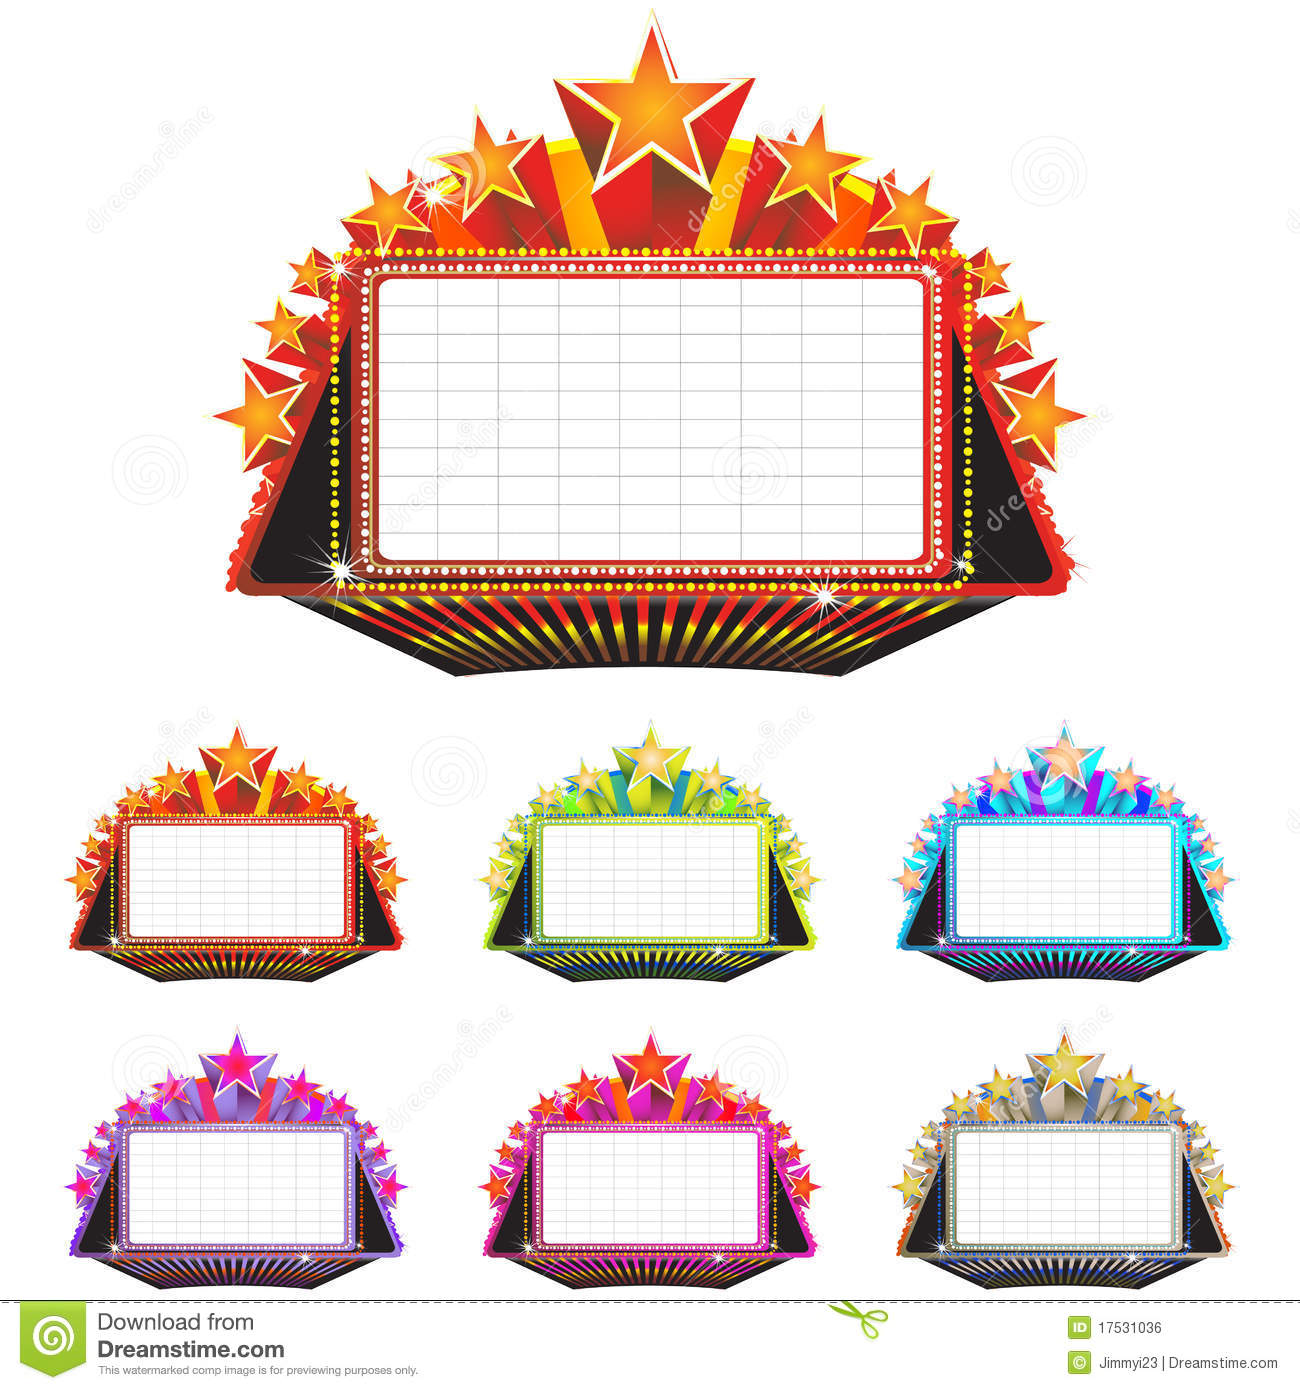 Blank Movie Marquee Clipart Images   Pictures   Becuo